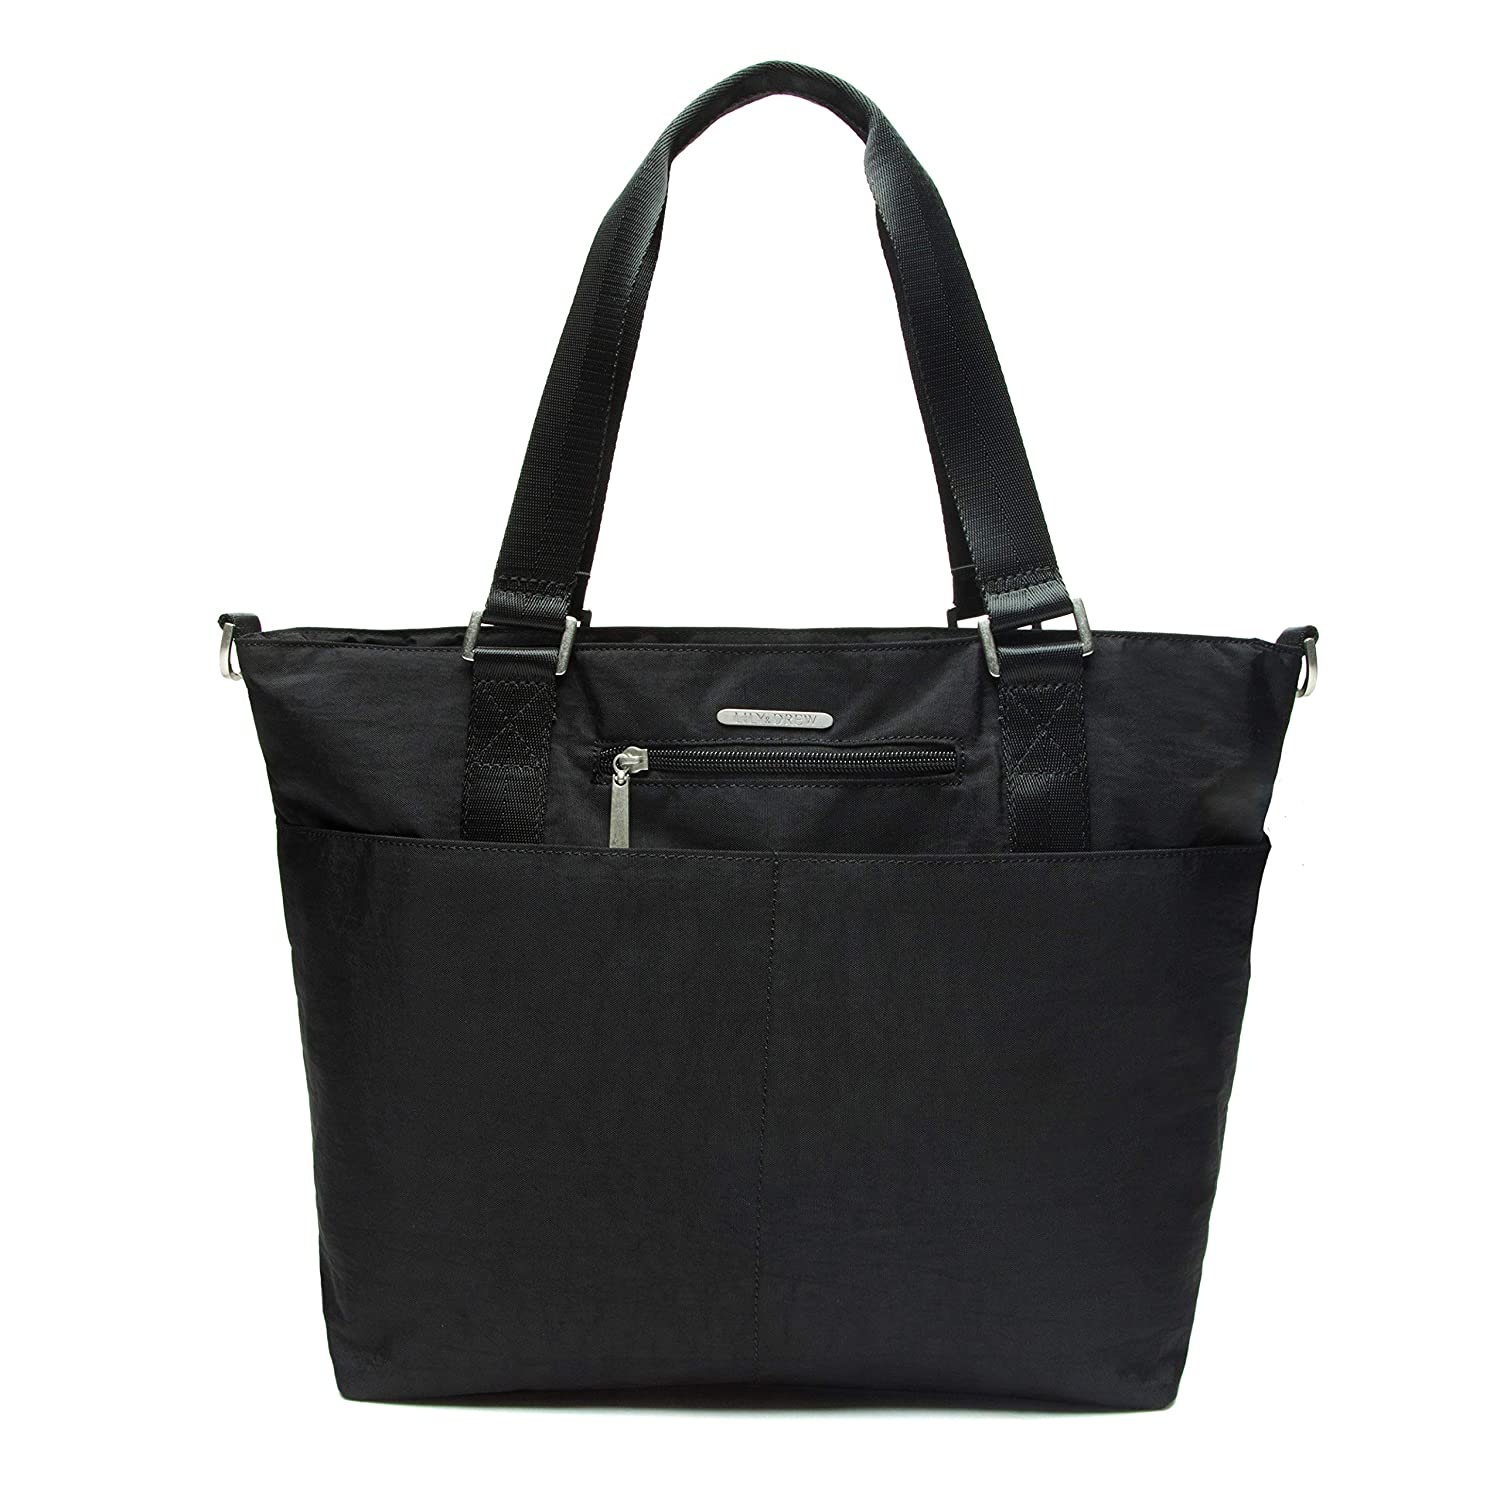 Lily /& Drew Nylon Crossbody Bag for Women with Shoulder Strap Laptop Sleeve Black Luggage Strap